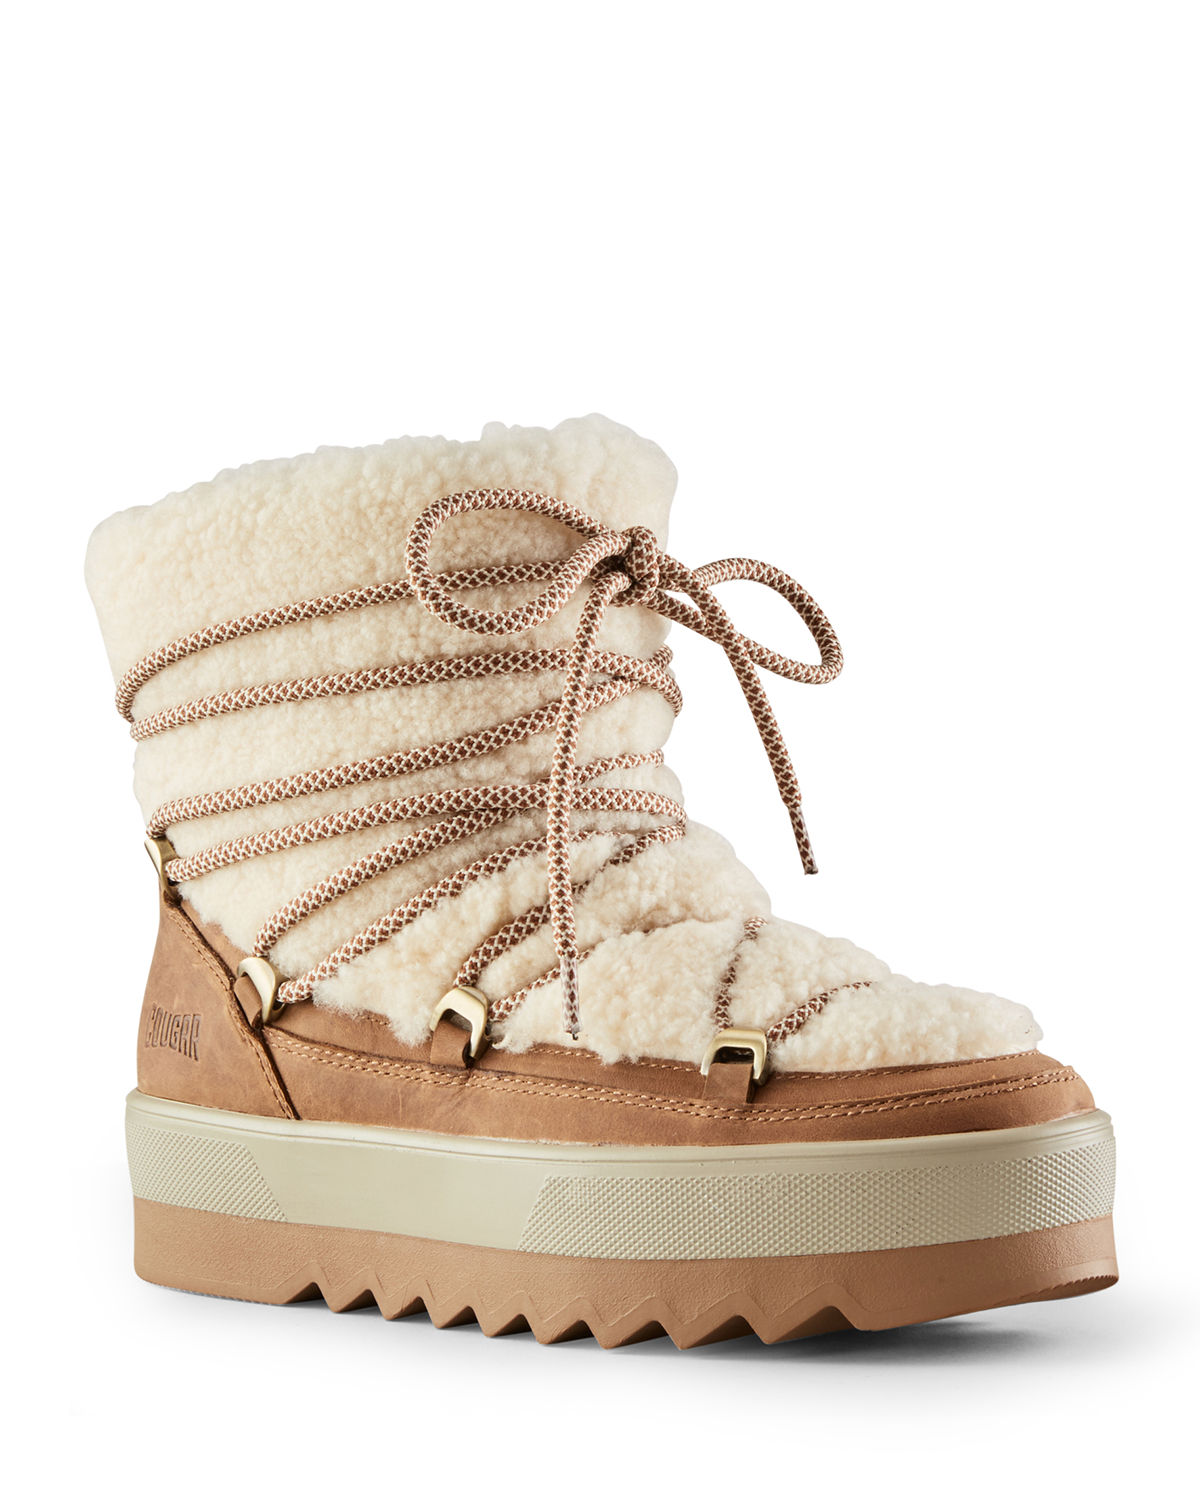 Verity Leather Shearling Winter Booties